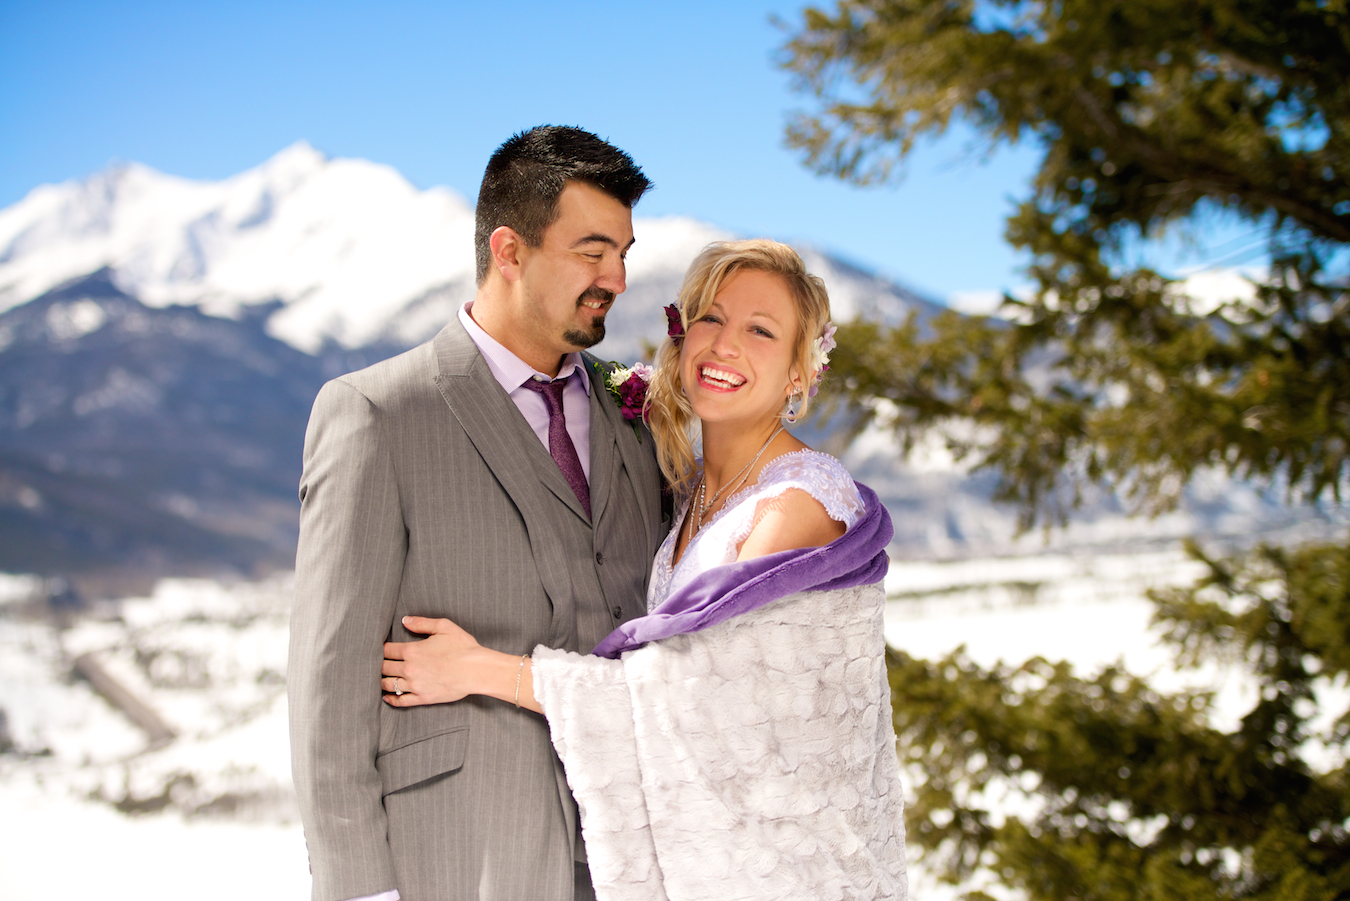 Sapphire Point Overlook Wedding Dillon Colorado Bride and Groom In Snowy Mountain in Winter